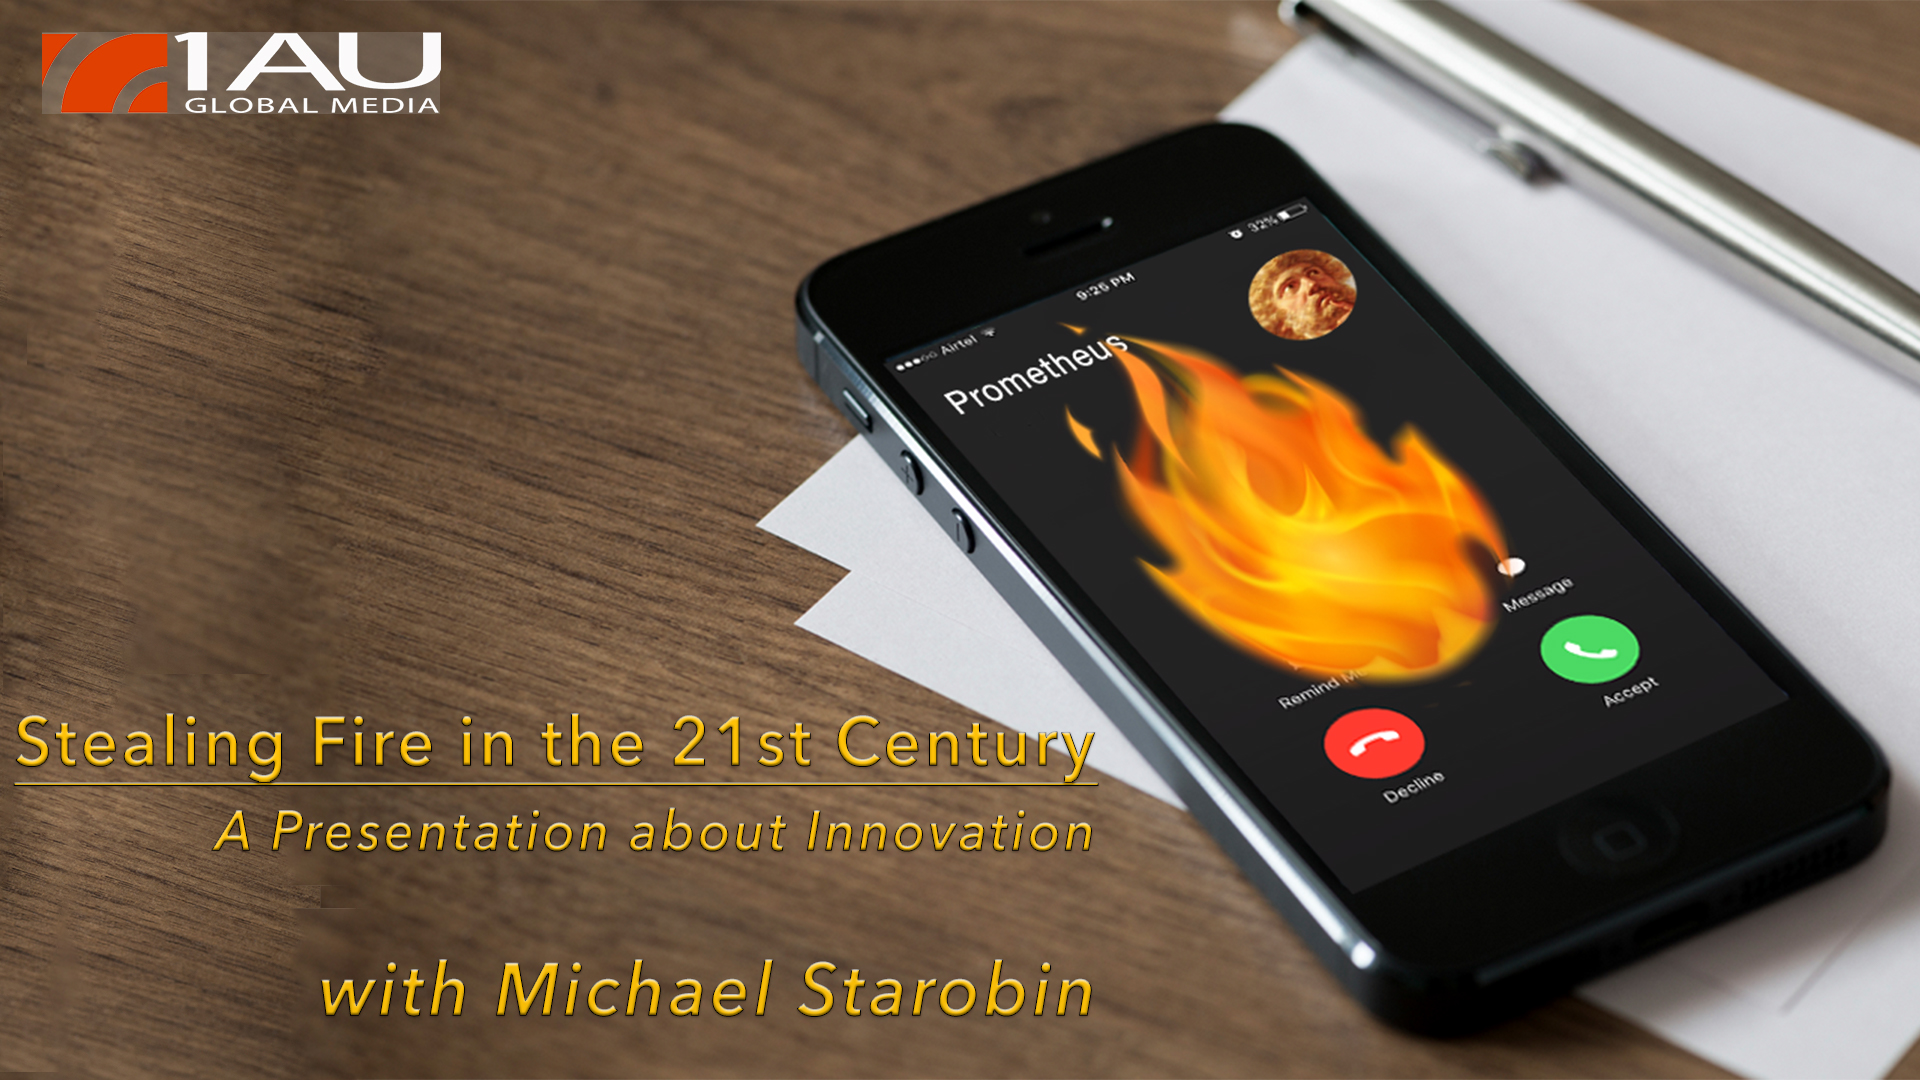 Stealing Fire in the 21st Century - A Presentation about Innovation